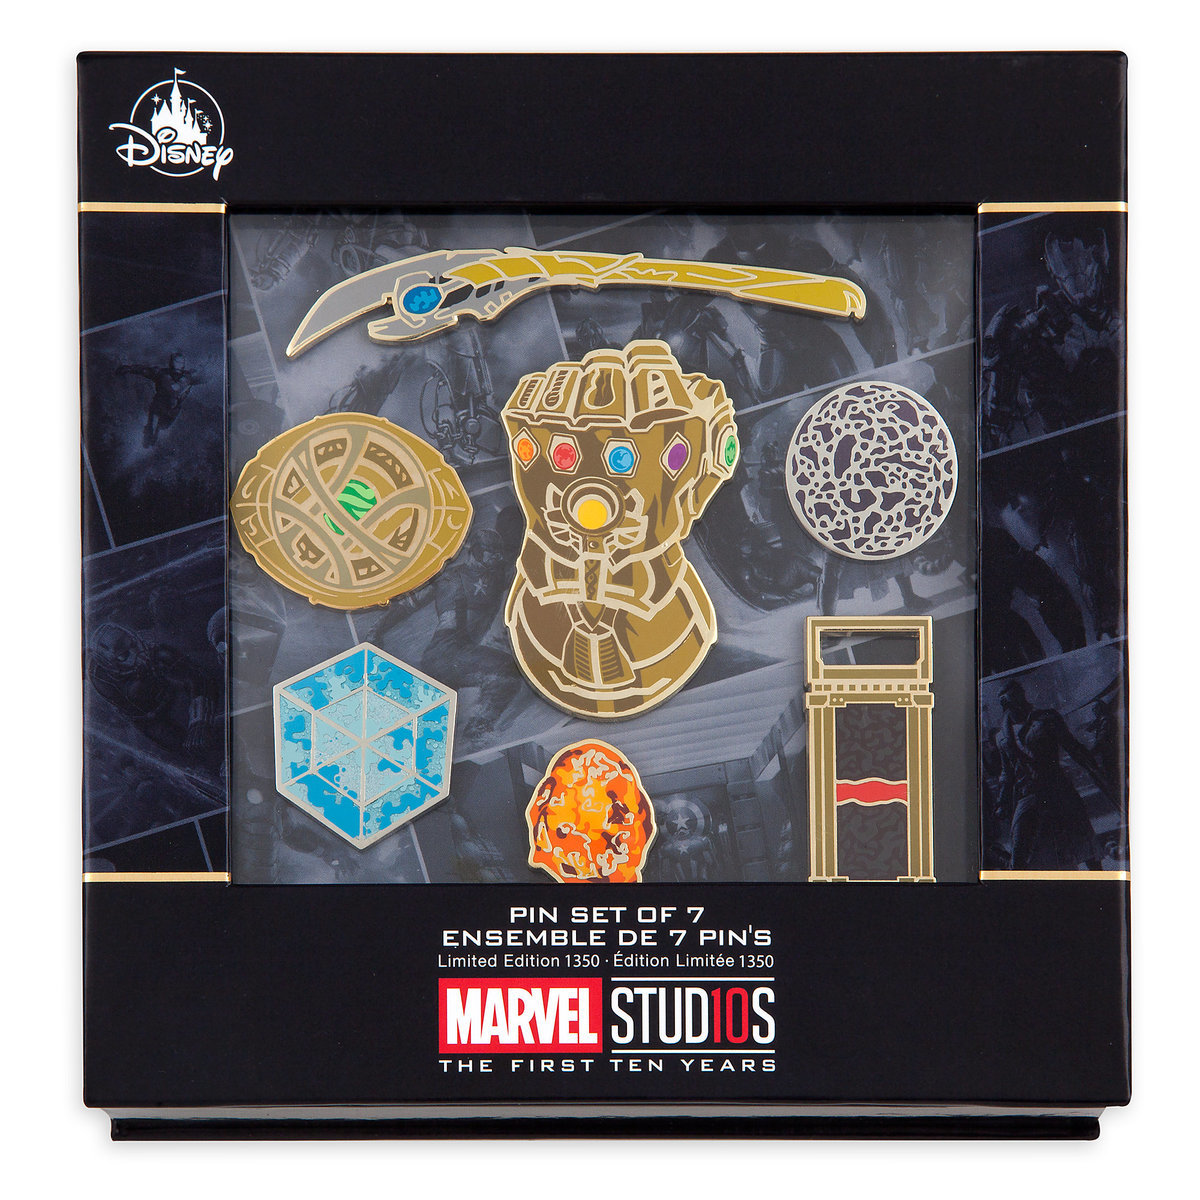 7 Pin Trailer Plug Wiring Diagram For Chevrolet, Product Image Of Marvel Studios 10th Anniversary Limited Edition Pin Set 9, 7 Pin Trailer Plug Wiring Diagram For Chevrolet